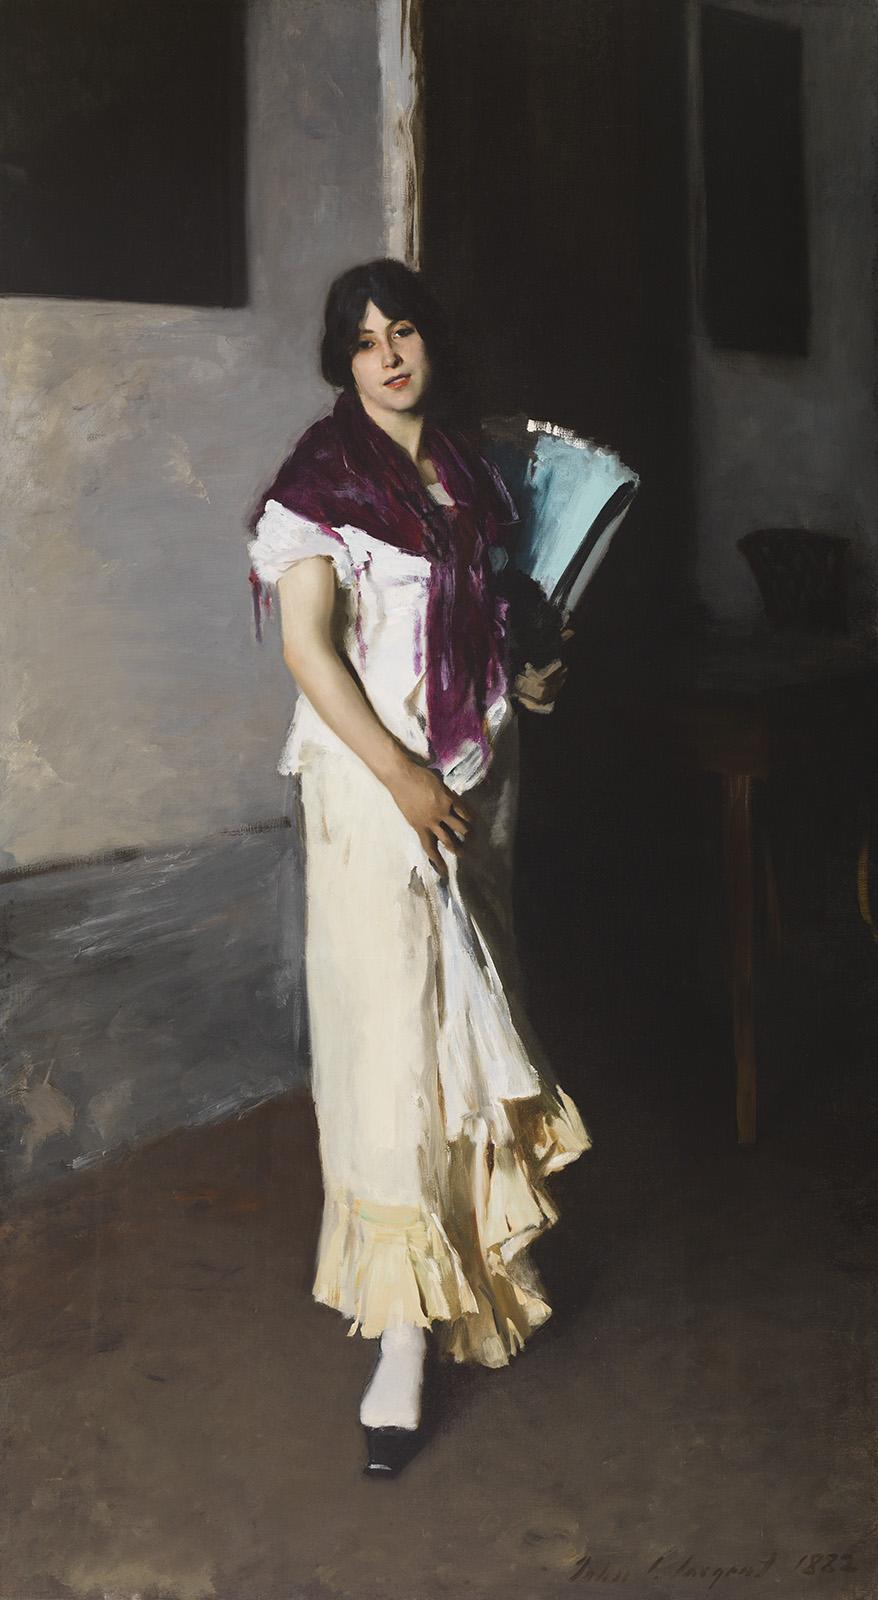 An artwork image of a woman